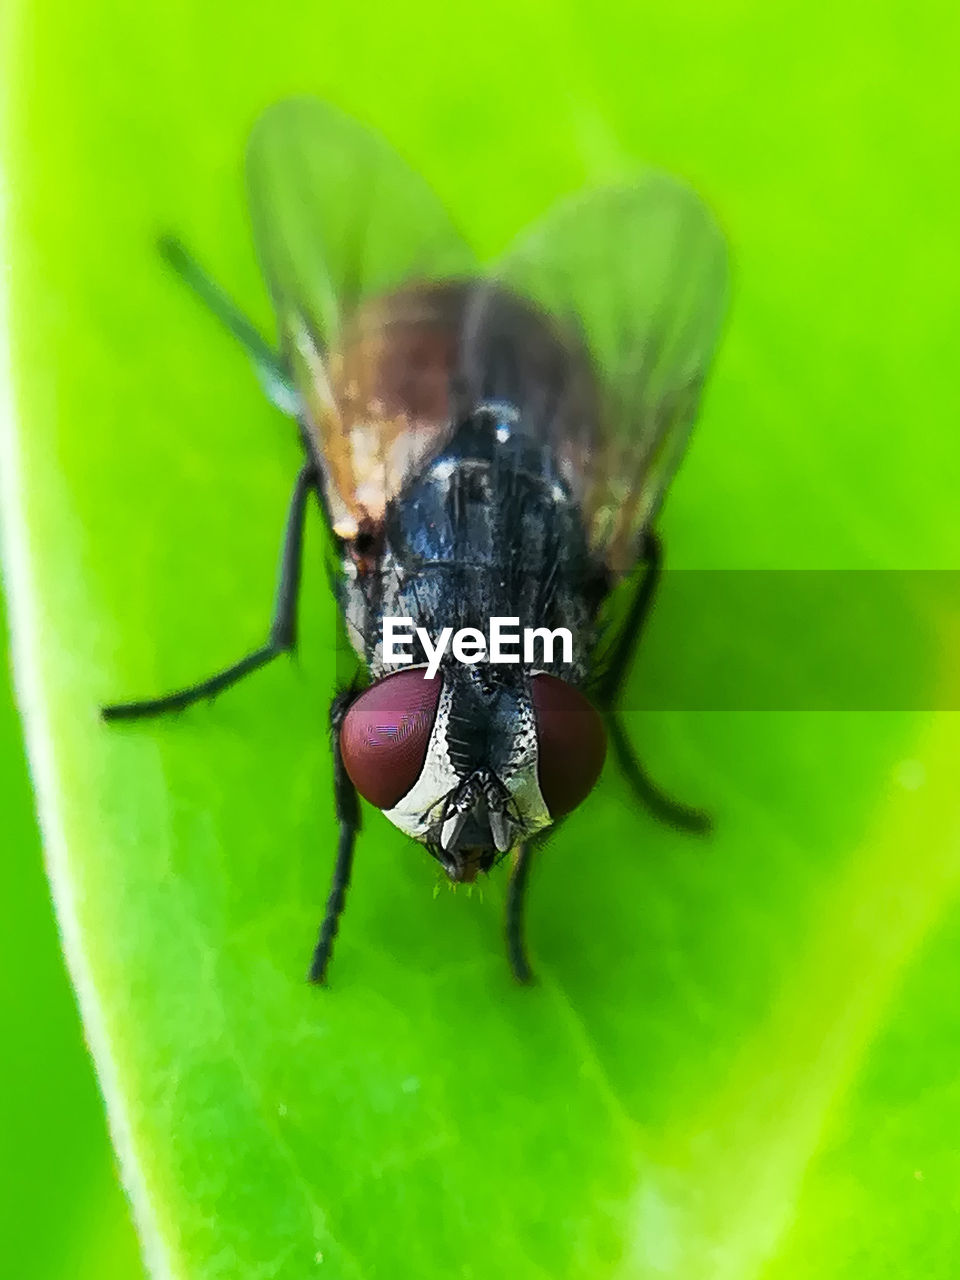 invertebrate, insect, animal wildlife, one animal, animal themes, animals in the wild, animal, green color, close-up, plant part, leaf, no people, nature, animal body part, zoology, fly, plant, selective focus, animal wing, day, outdoors, animal eye, animal leg